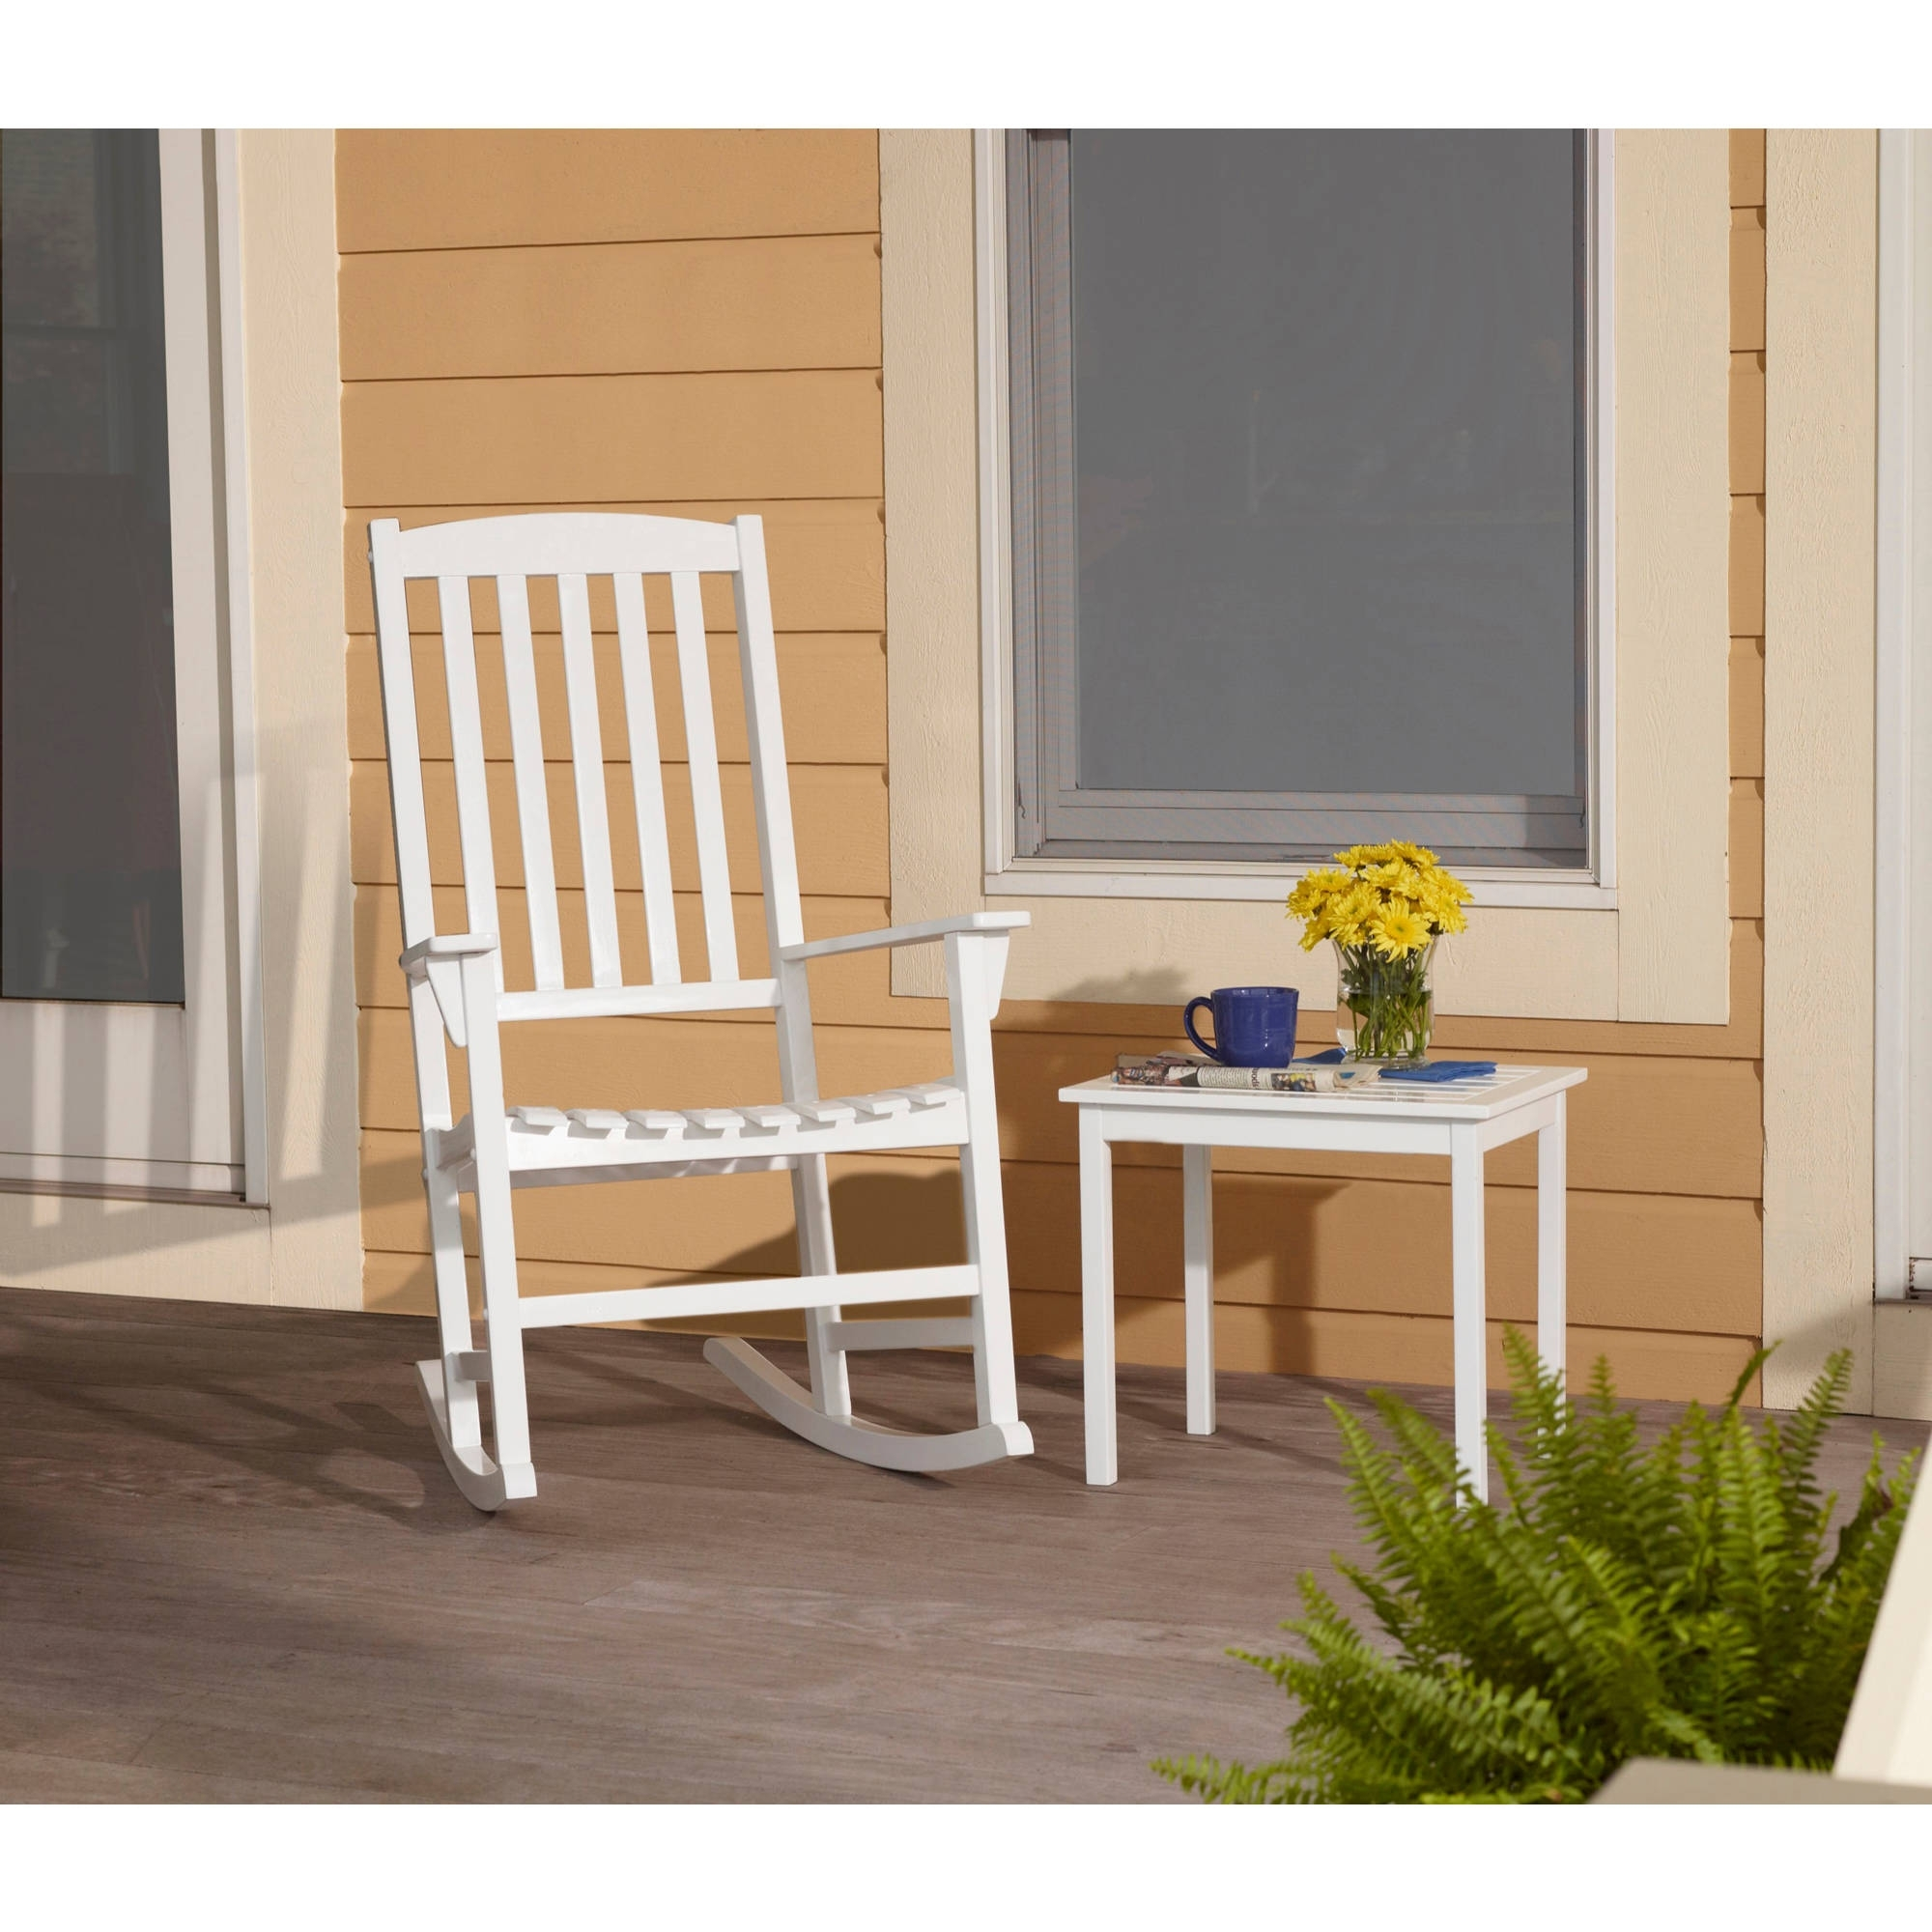 Mainstays Outdoor Rocking Chair, White – Walmart With Regard To Well Liked Rocking Chairs At Walmart (View 2 of 15)